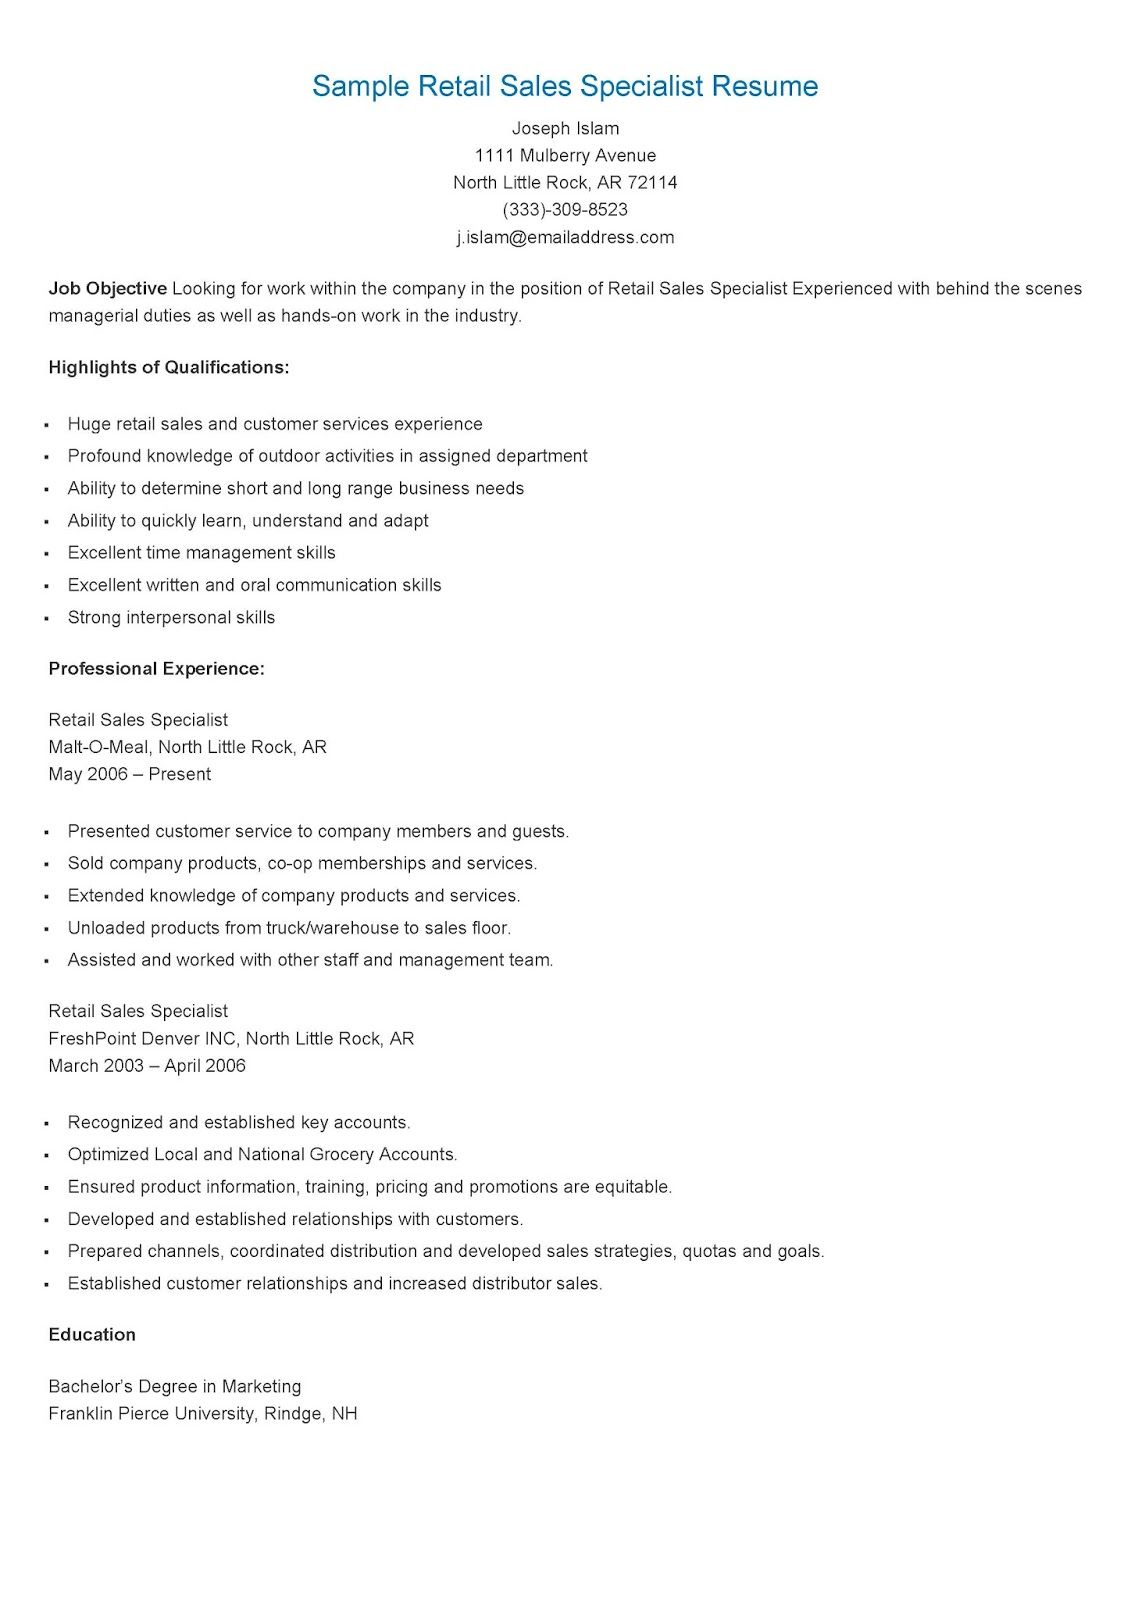 Sample Retail Sales Specialist Resume  Resume Retail Sales